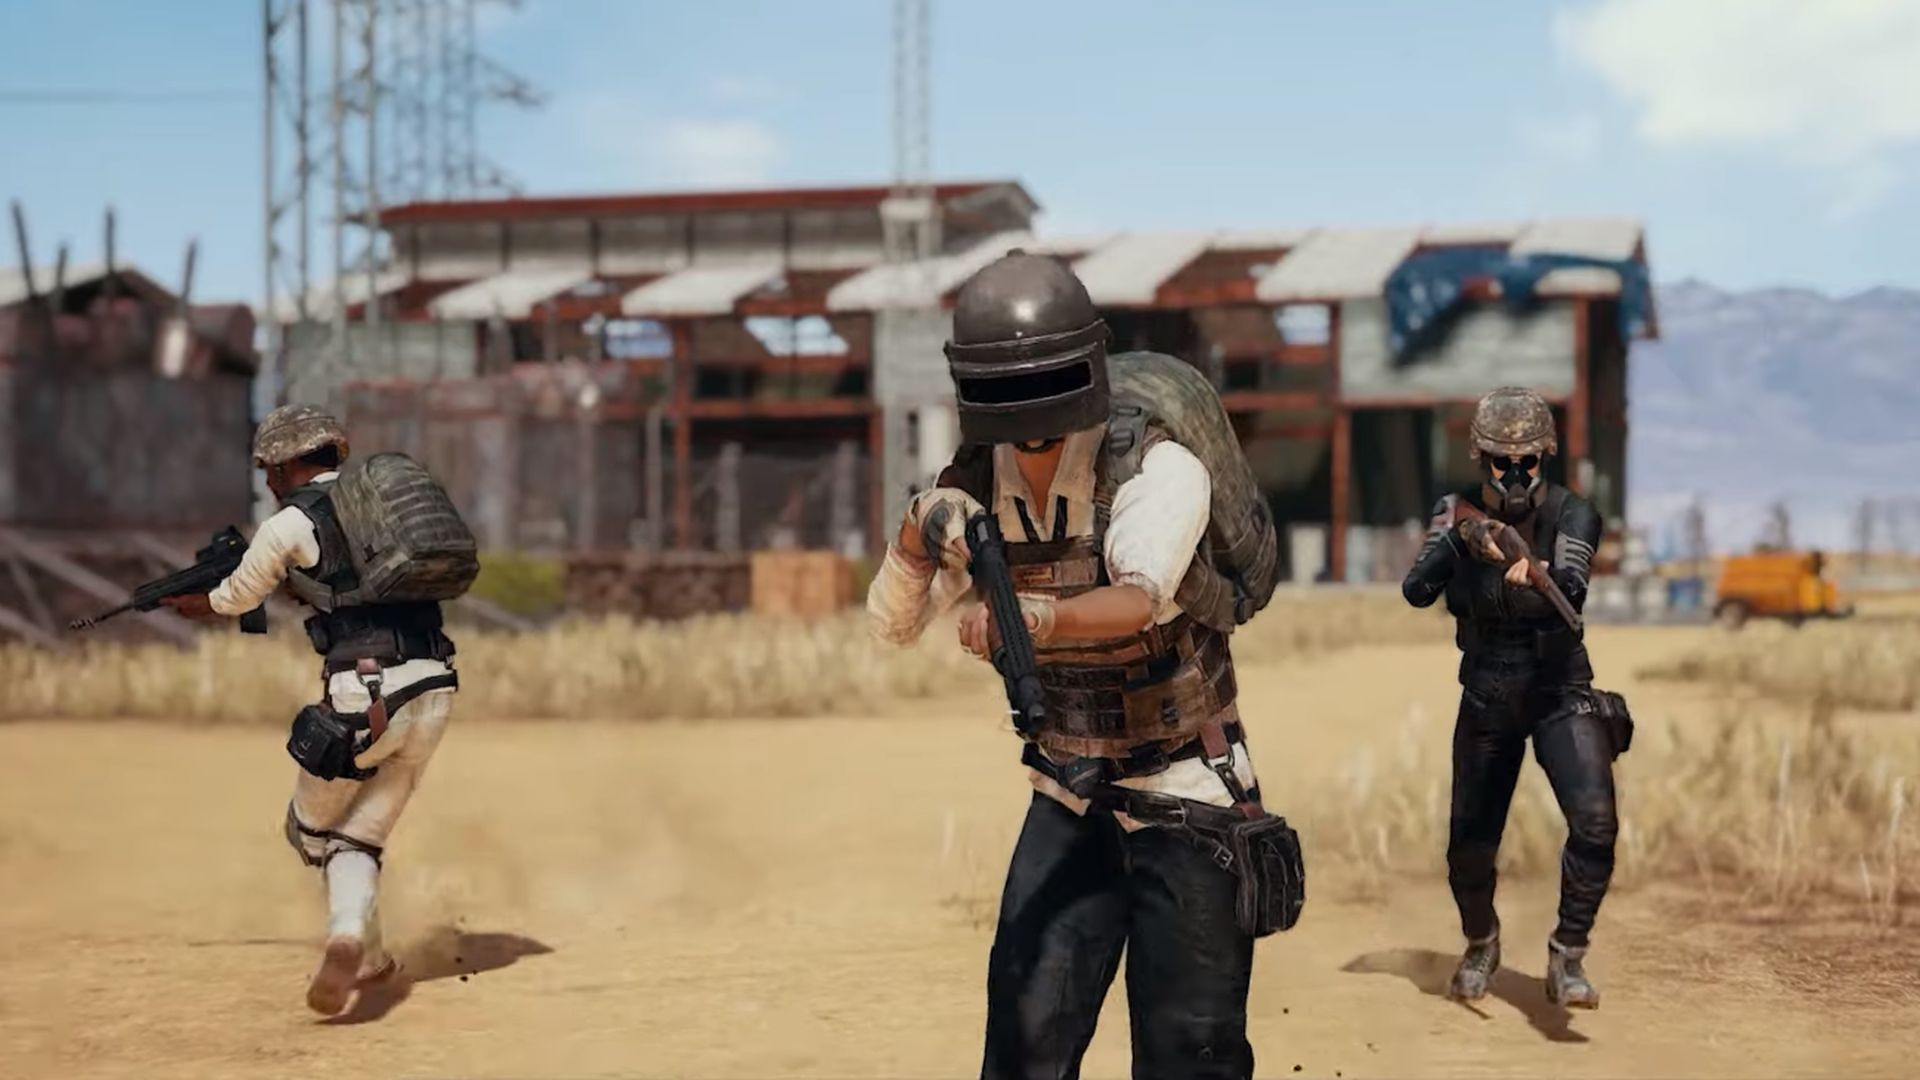 Jordan is the latest country to ban PUBG – and Fortnite